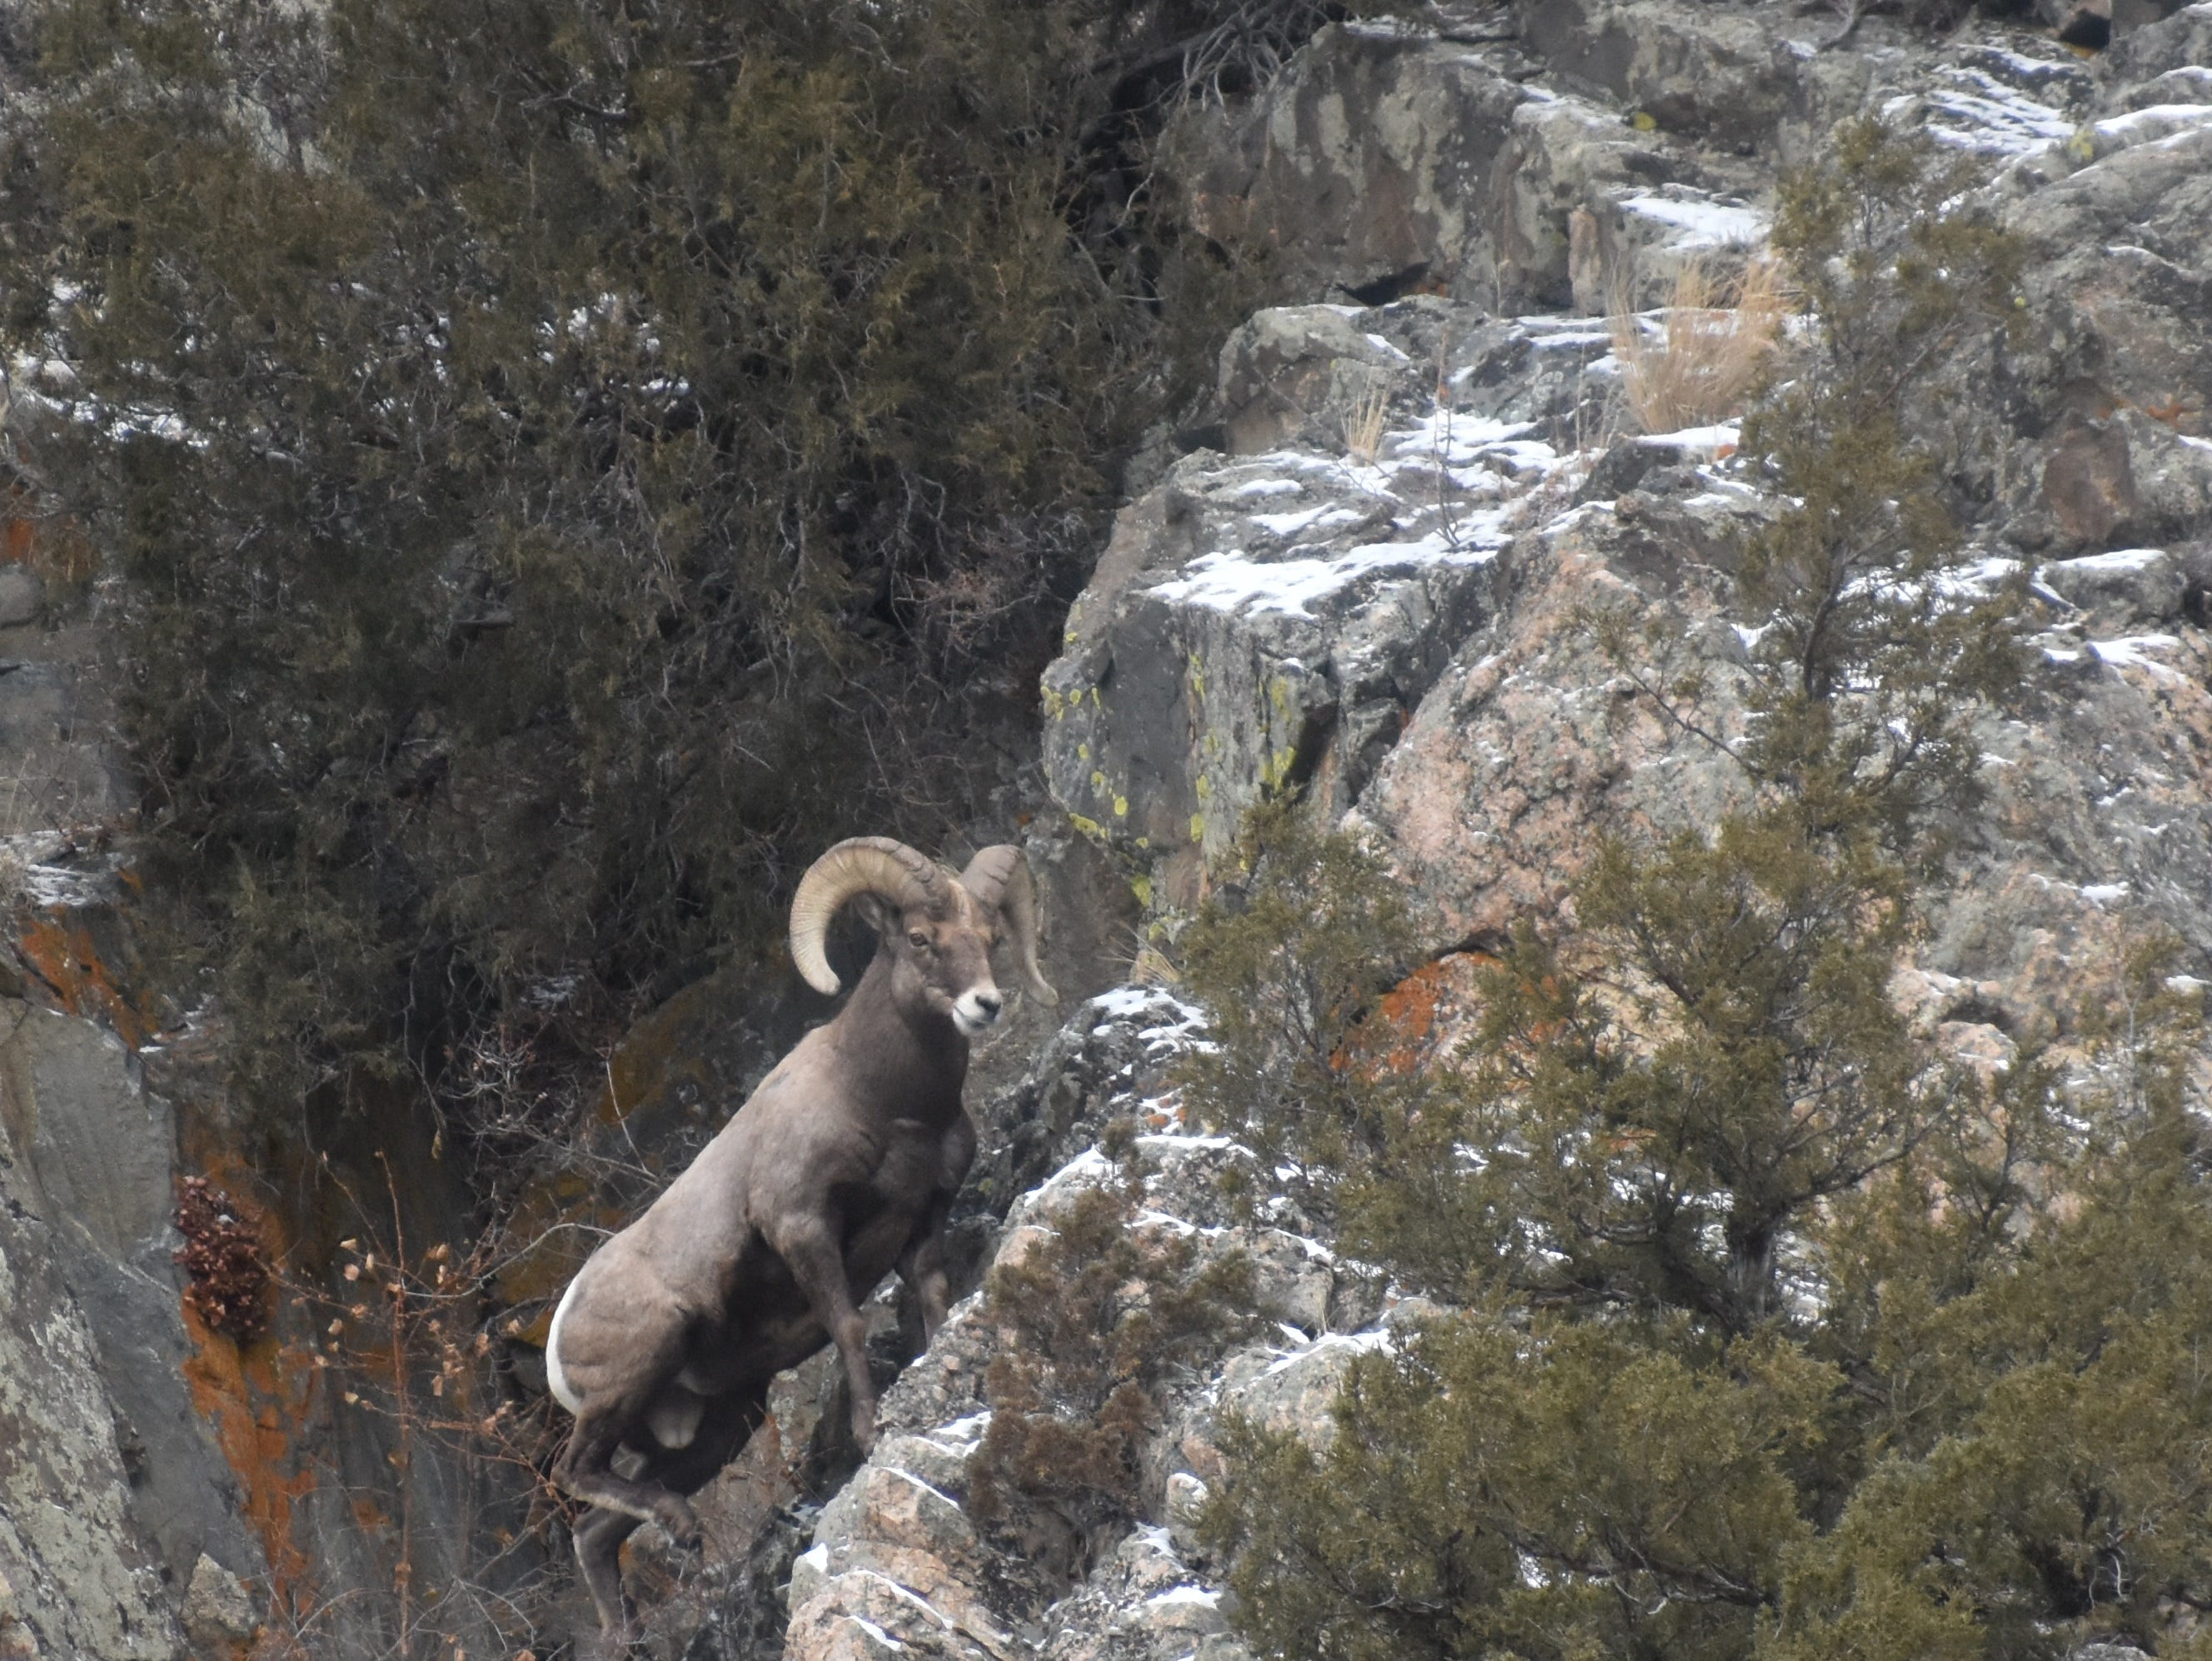 A bighorn ram climbs up the side of the mountain above Big Bend Campground in the Poudre Canyon.